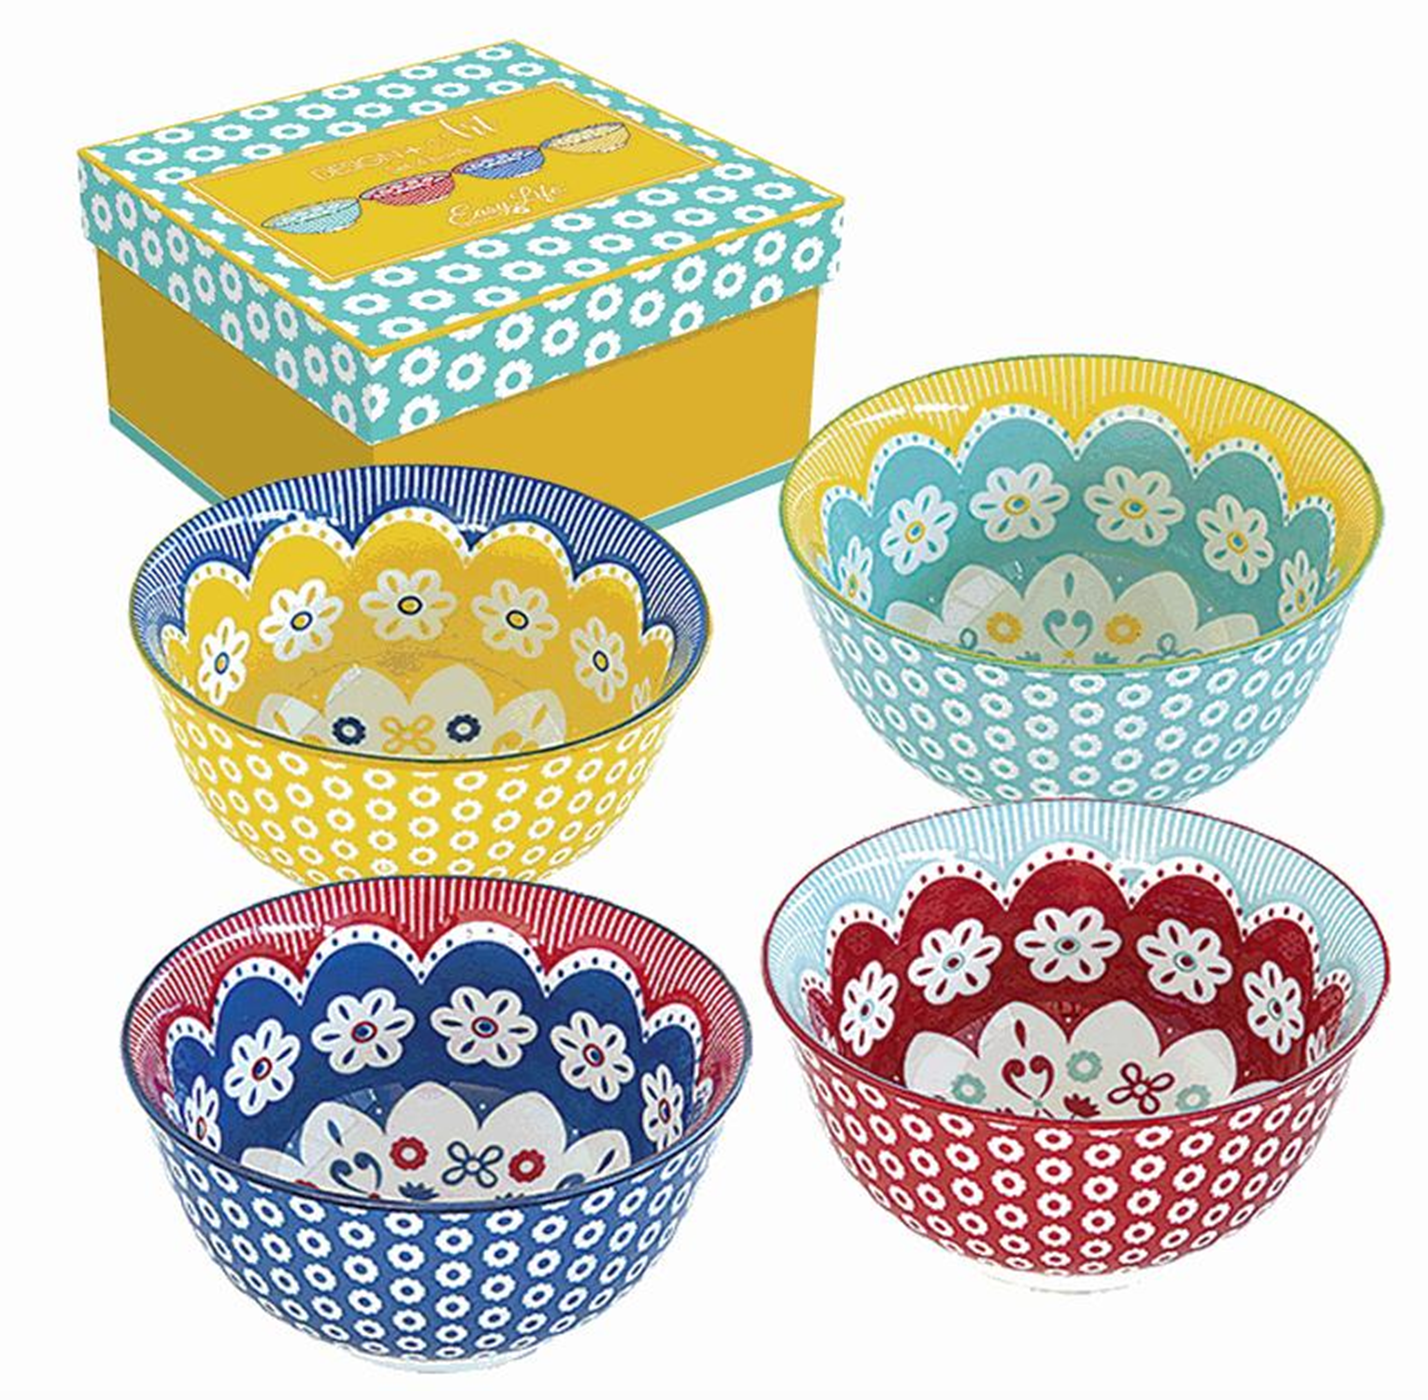 A set of 4 colorful bowls